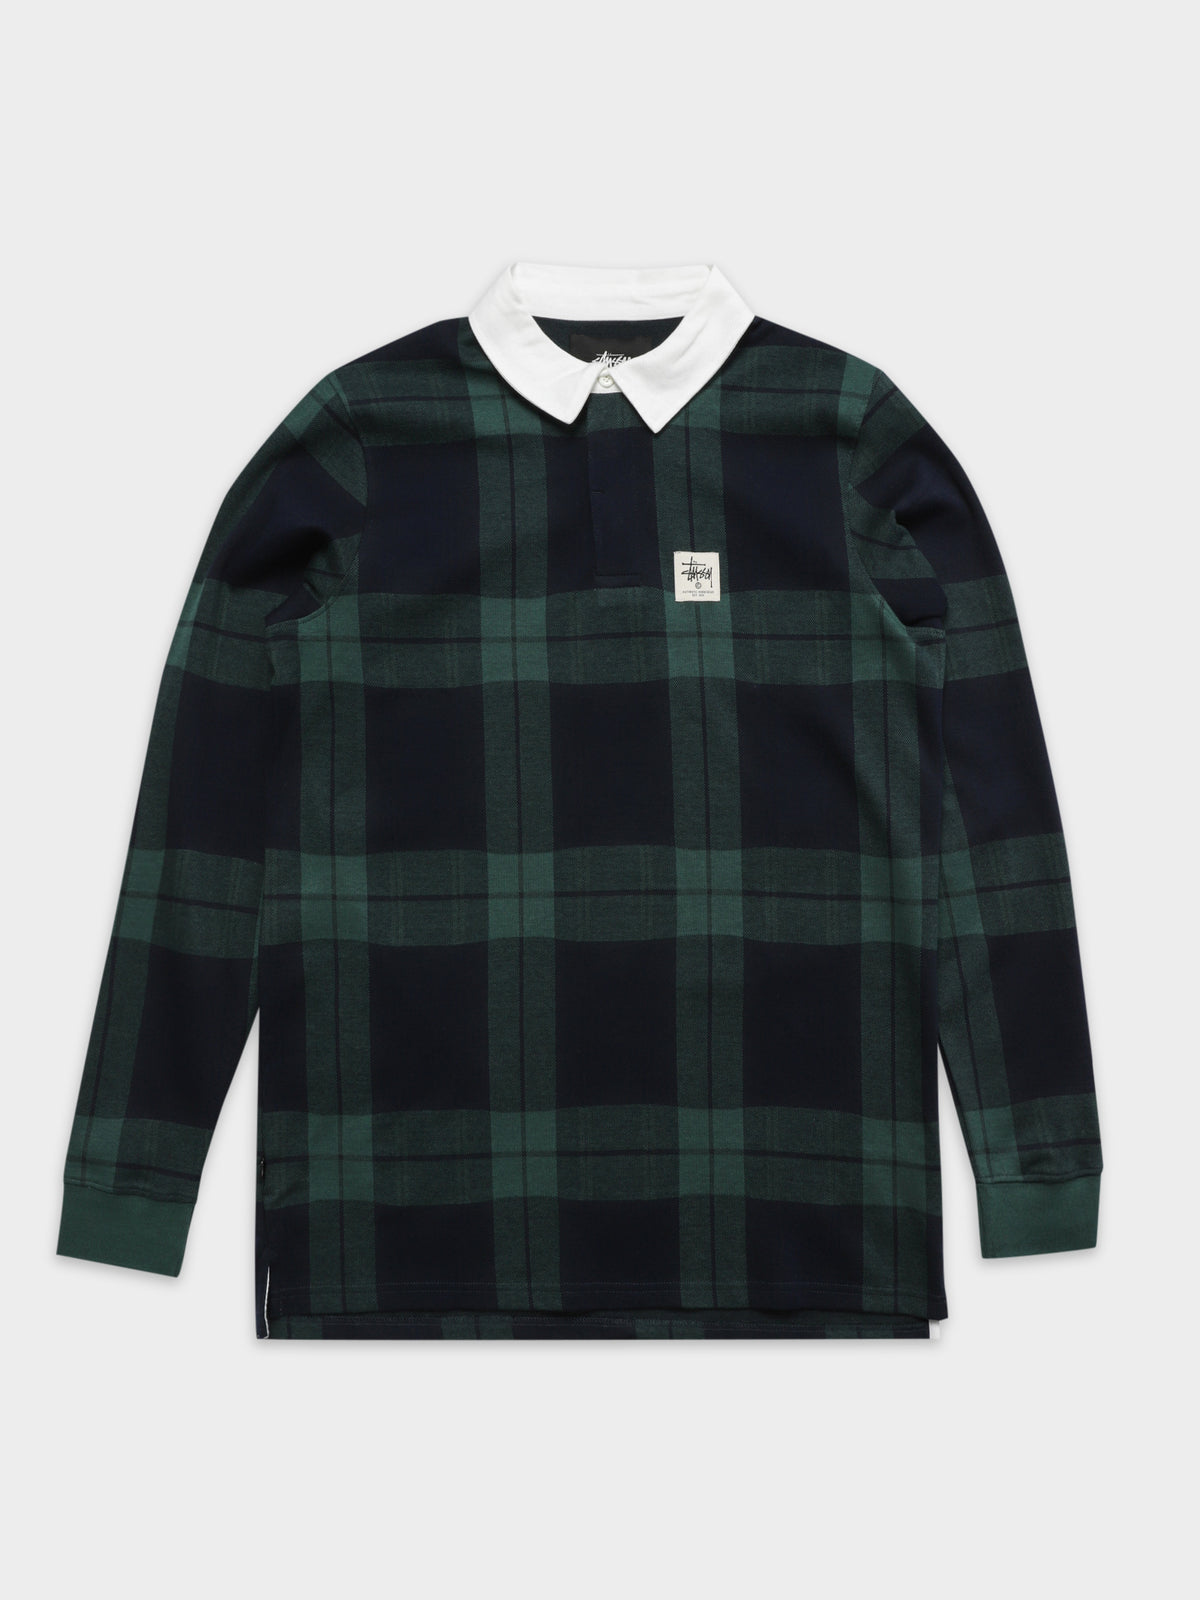 June Jacquard Rugby Shirt in Green